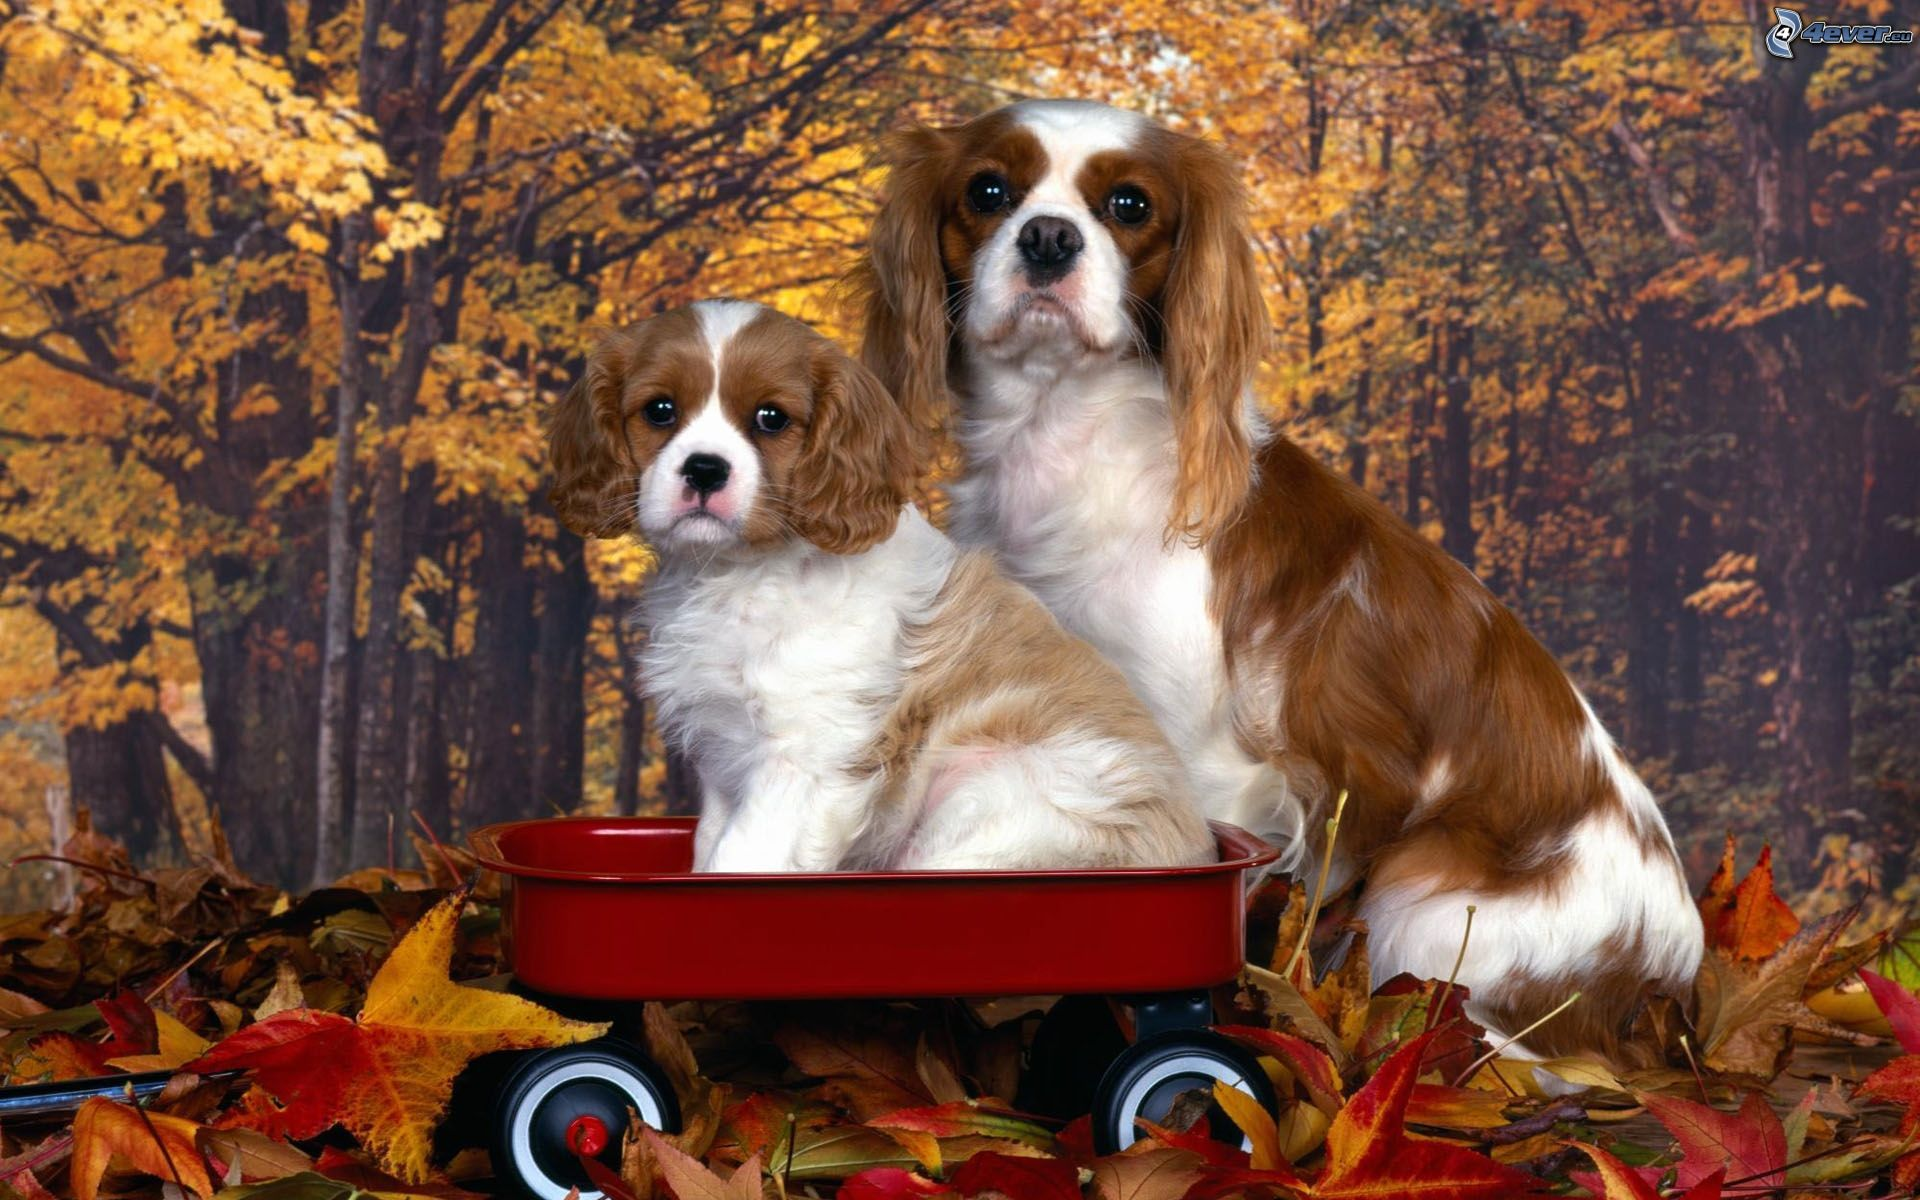 http://immagini.4ever.eu/data/download/animali/cani/cavalier-king-charles-spaniel,-carello,-foglie-di-autunno,-carta-da-parati-148863.jpg